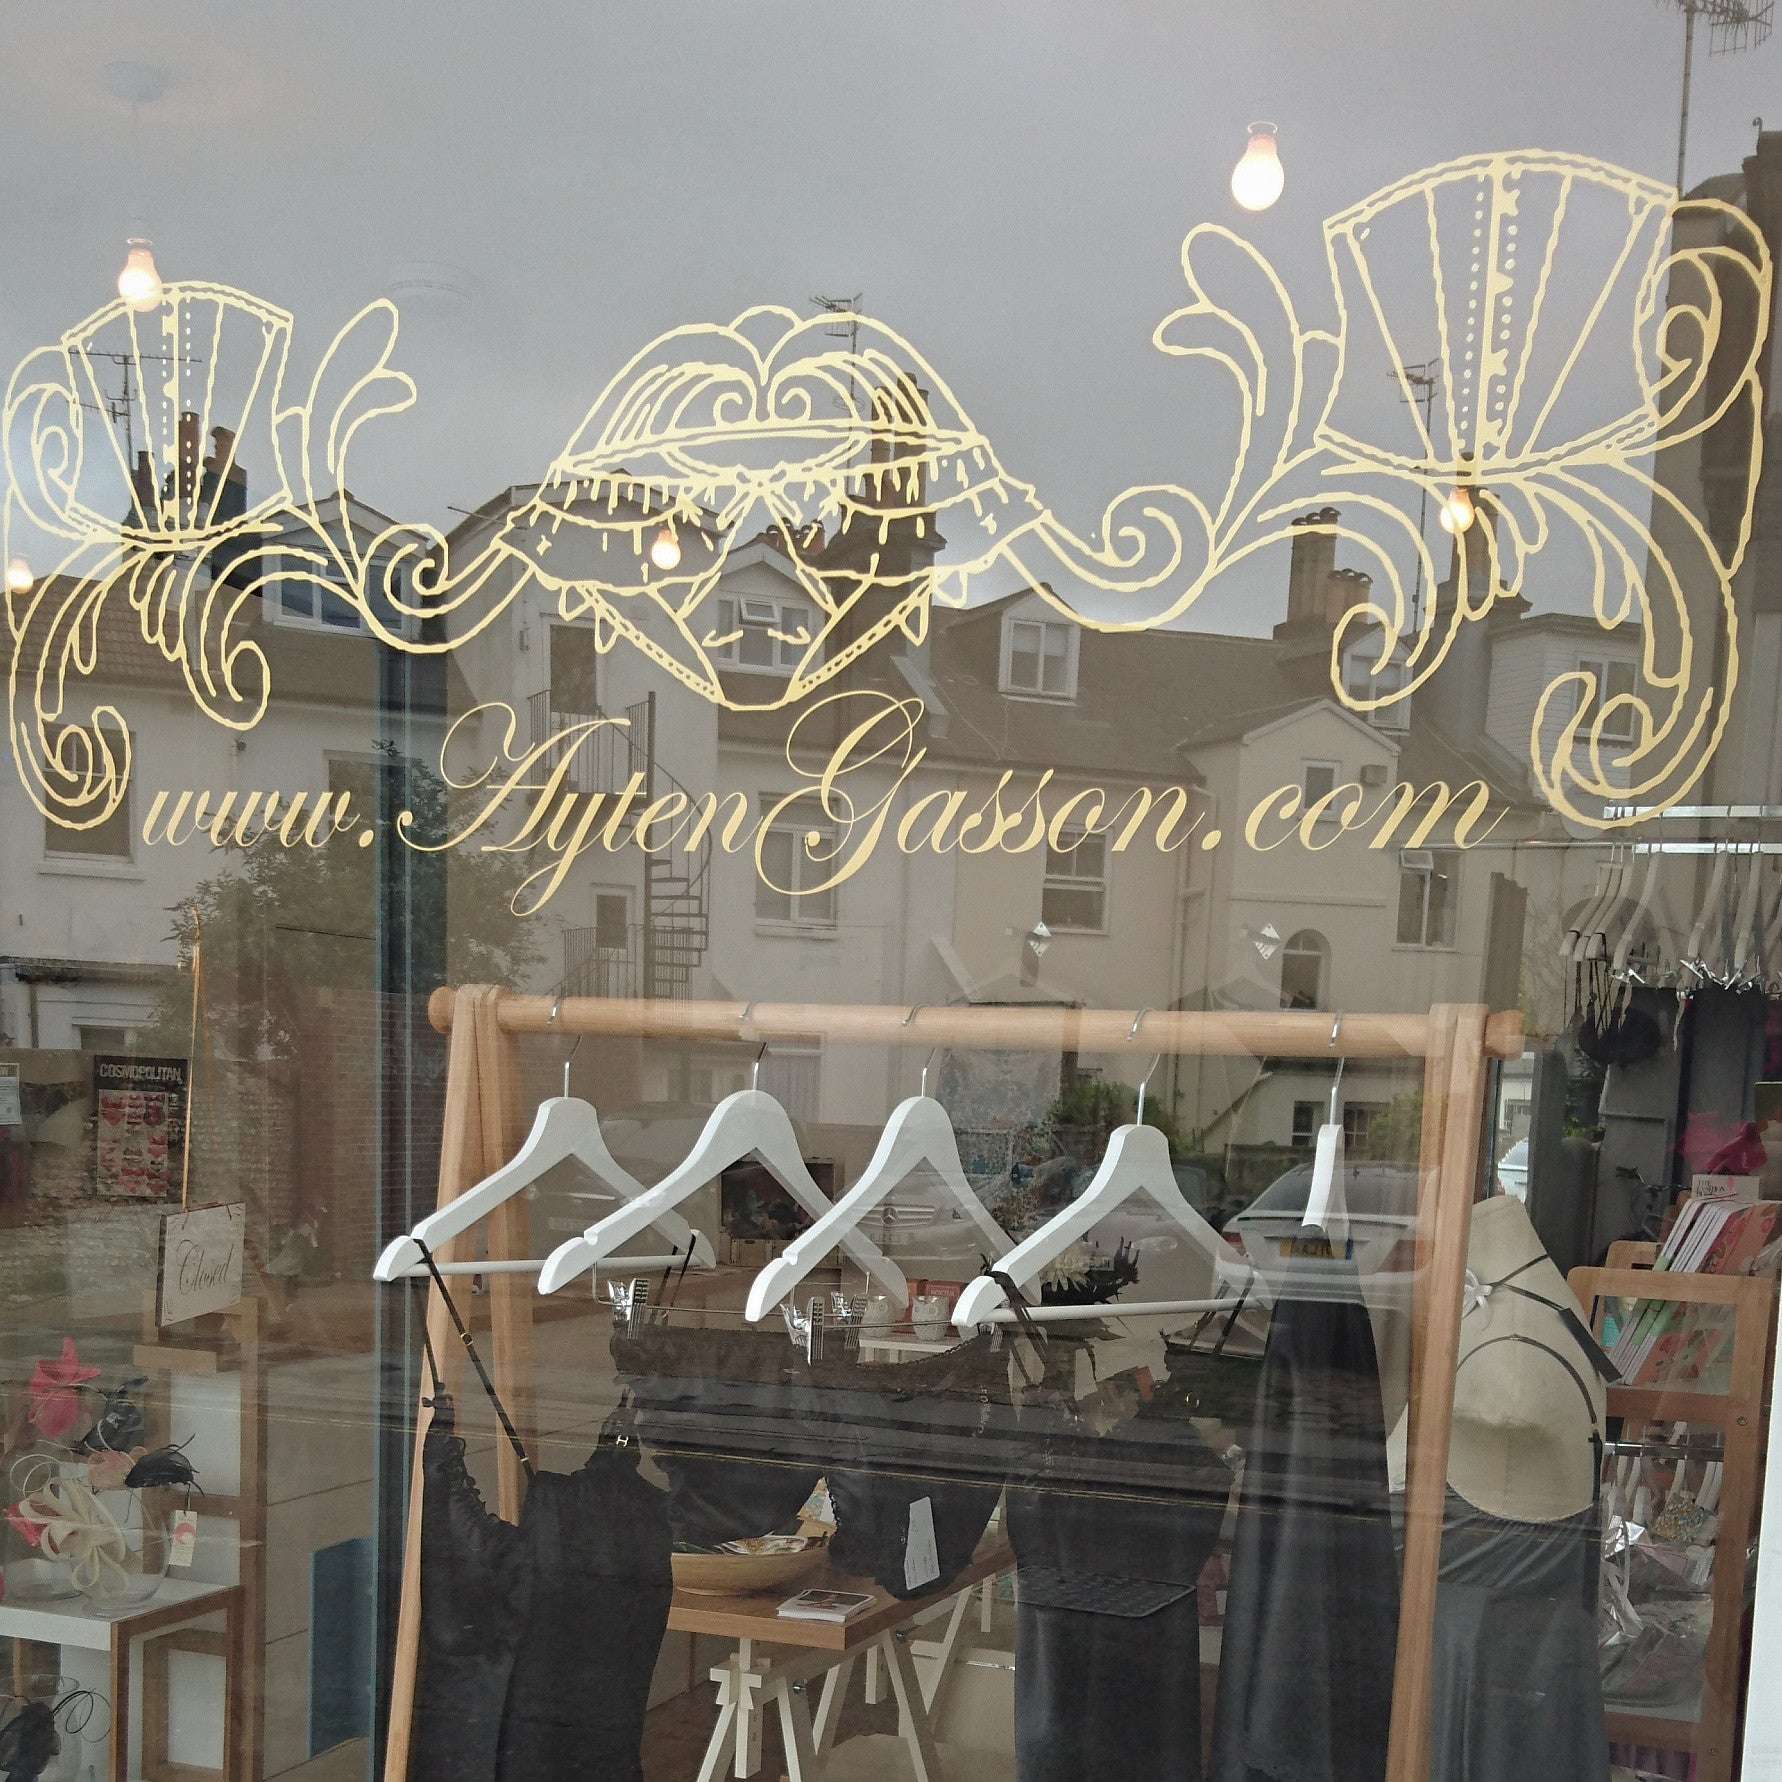 Introducing The Ayten Gasson Boutique In Brighton